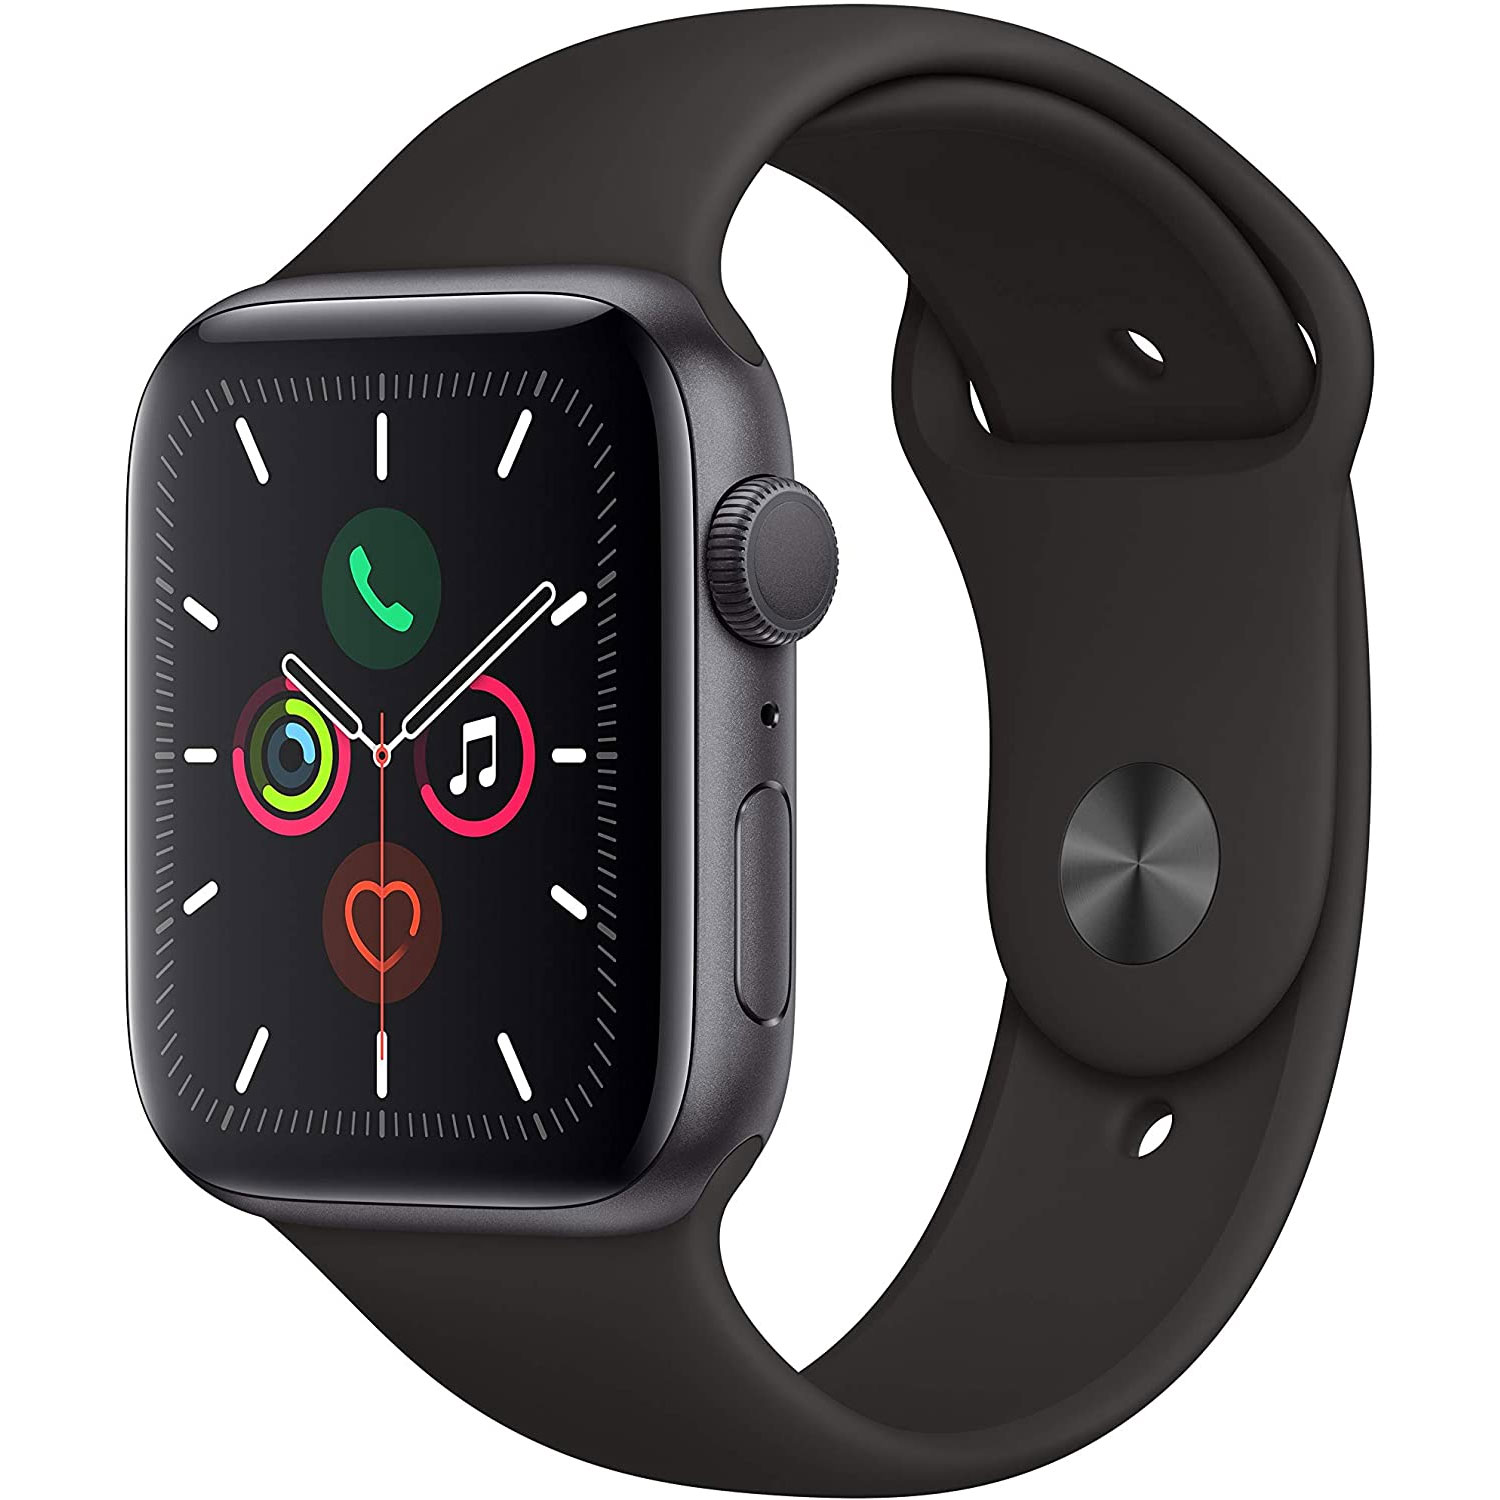 APPLE Watch Series 5 A2093 44mm Space Gray w/ Black Sport Band OPEN BOX